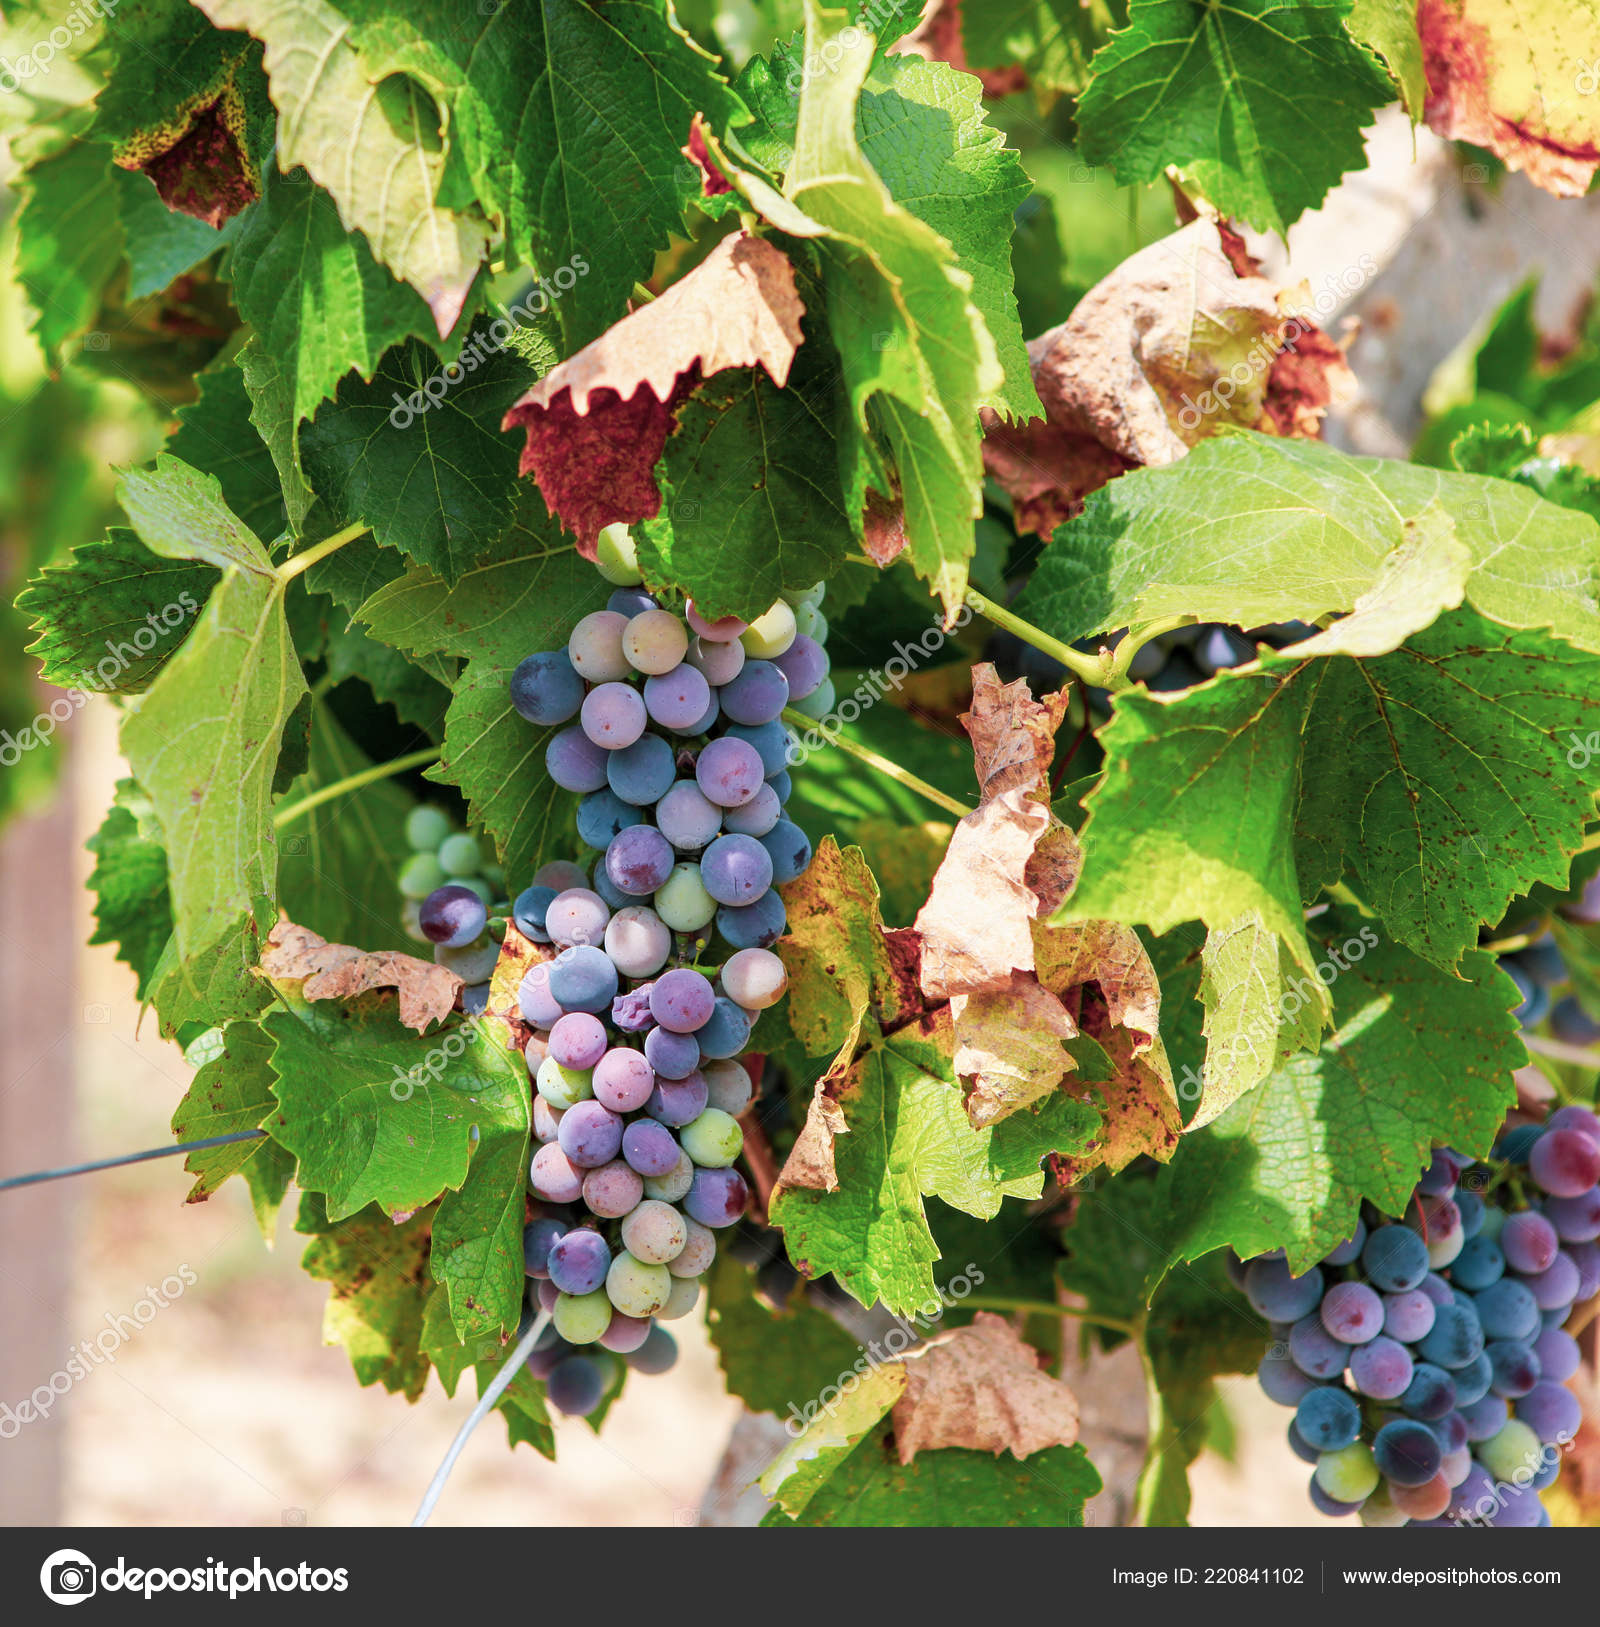 Ecologically Clean Grapes Production High Quality Wine Stock Photo C Nenovbrothers 220841102